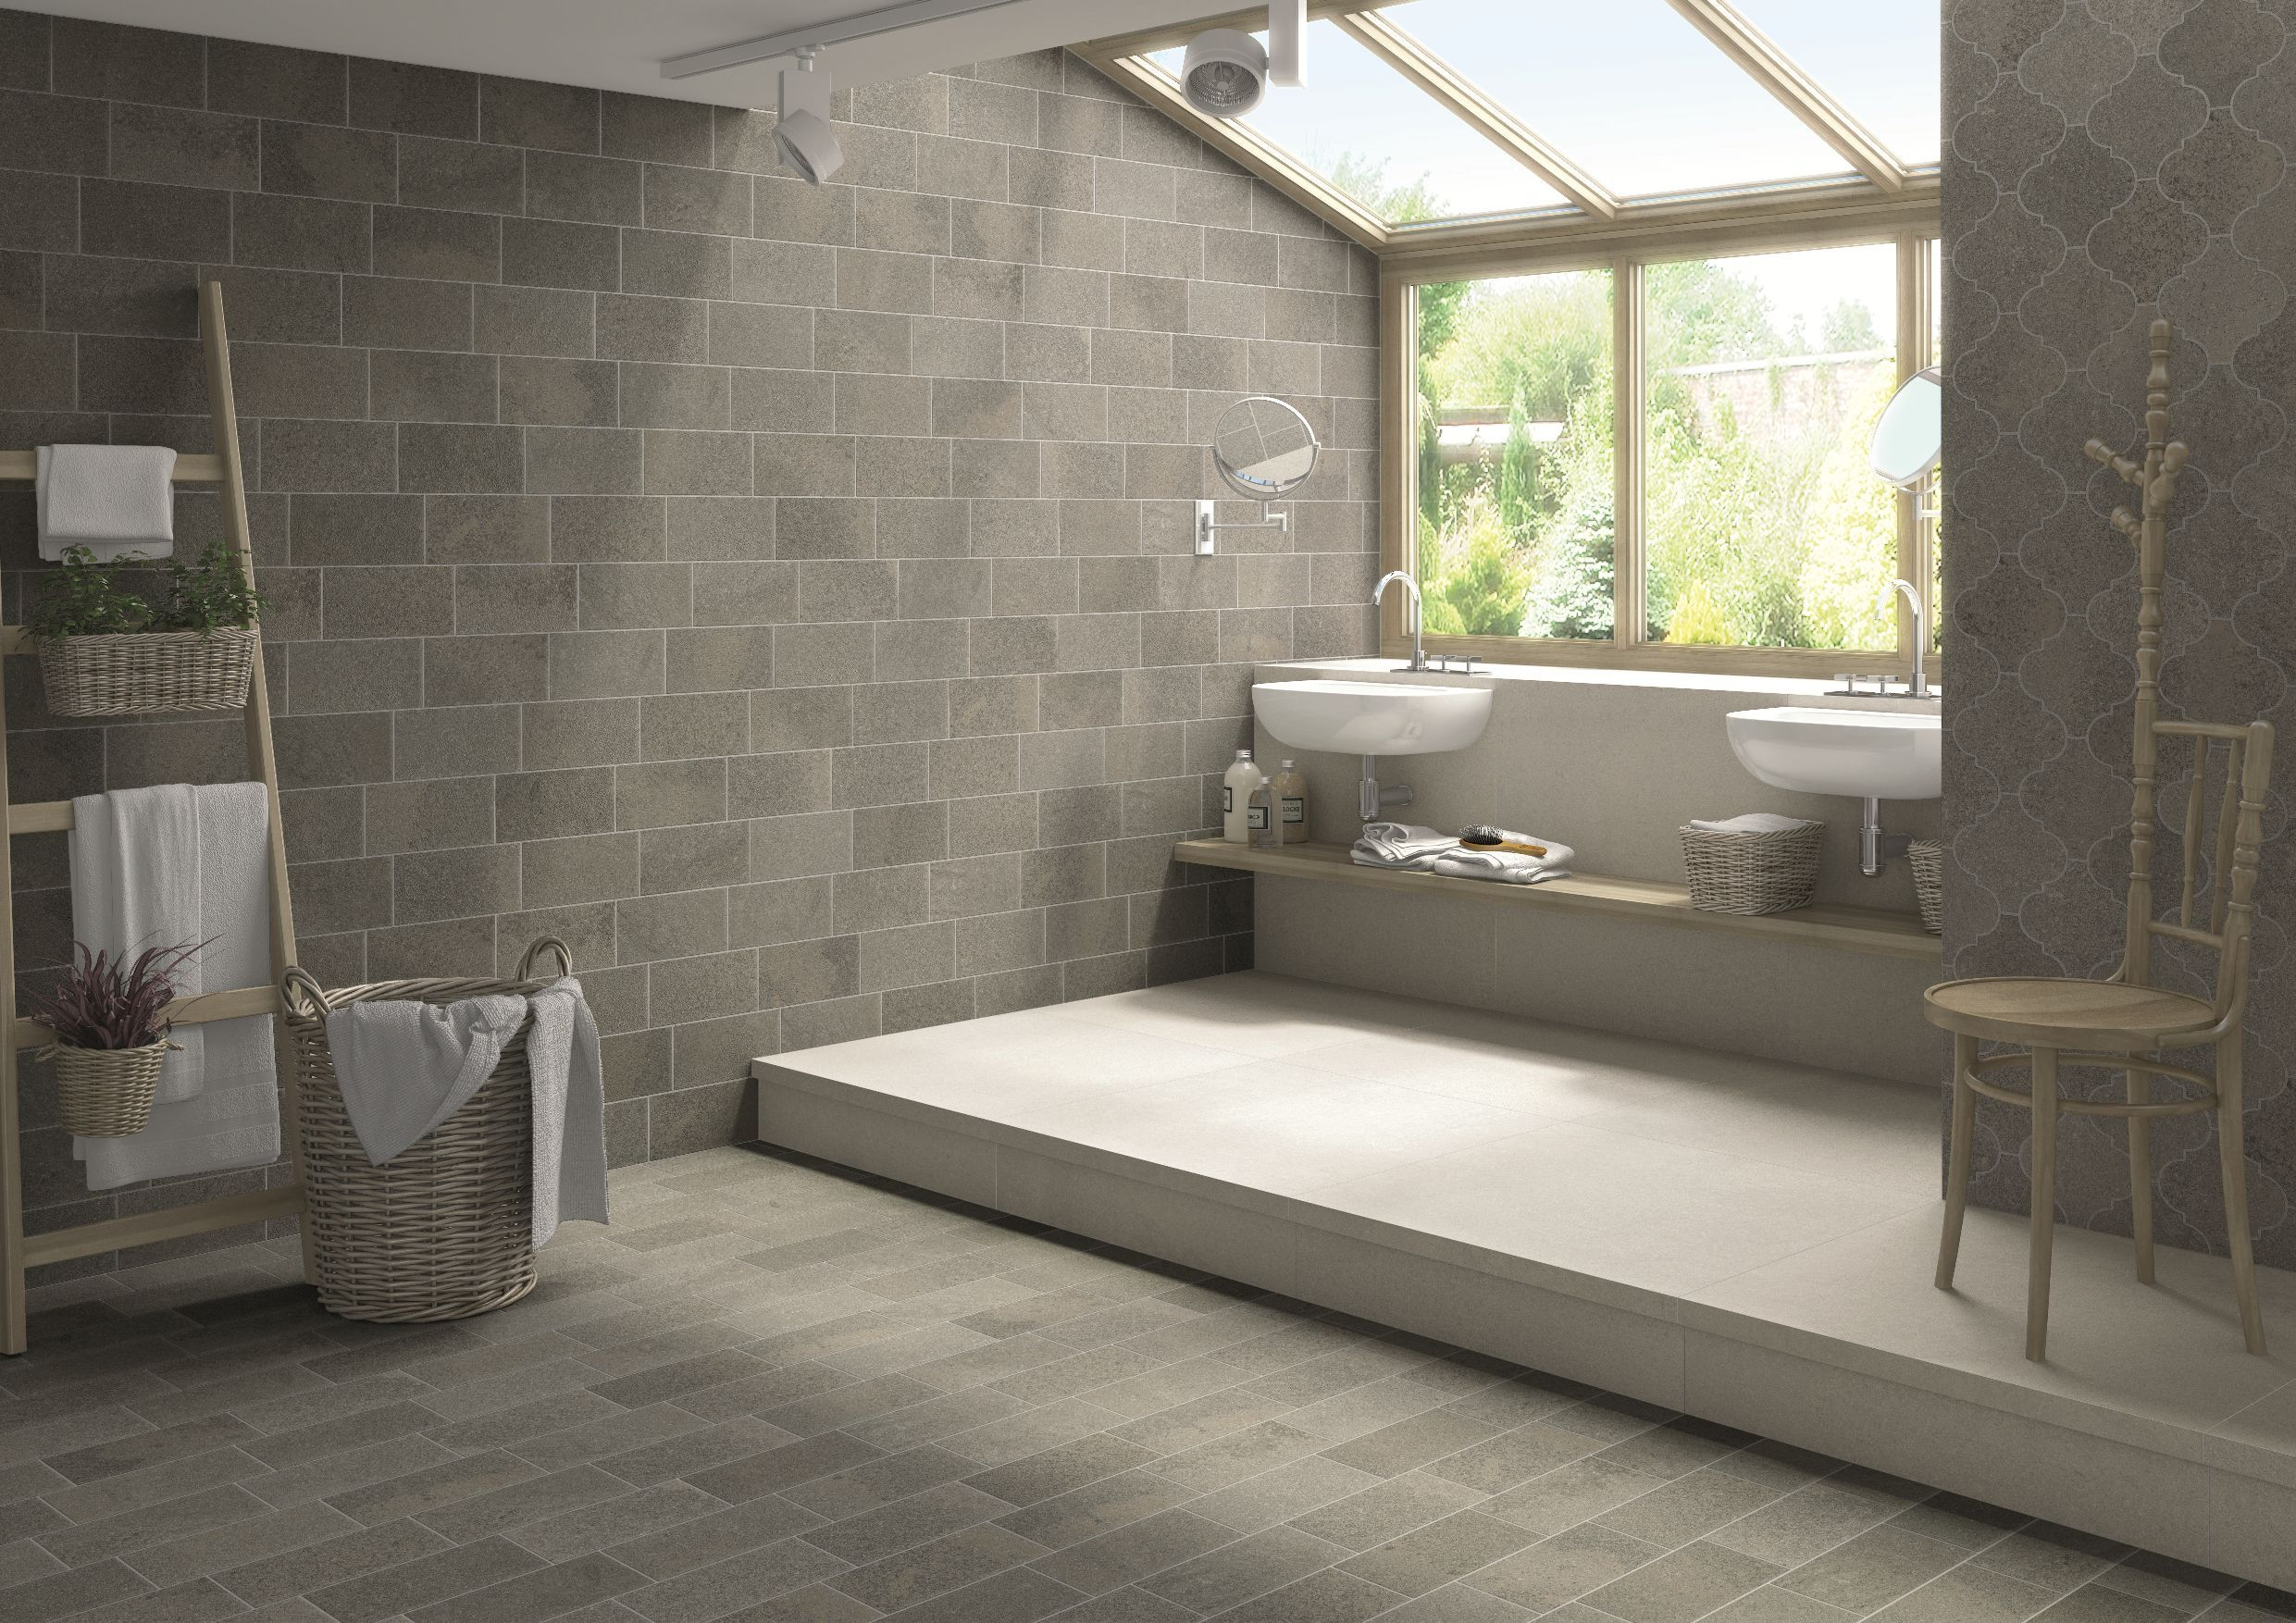 Aston Personifies The Majesty Of Stone In This Series With Great Beauty And  Harmony Thanks To